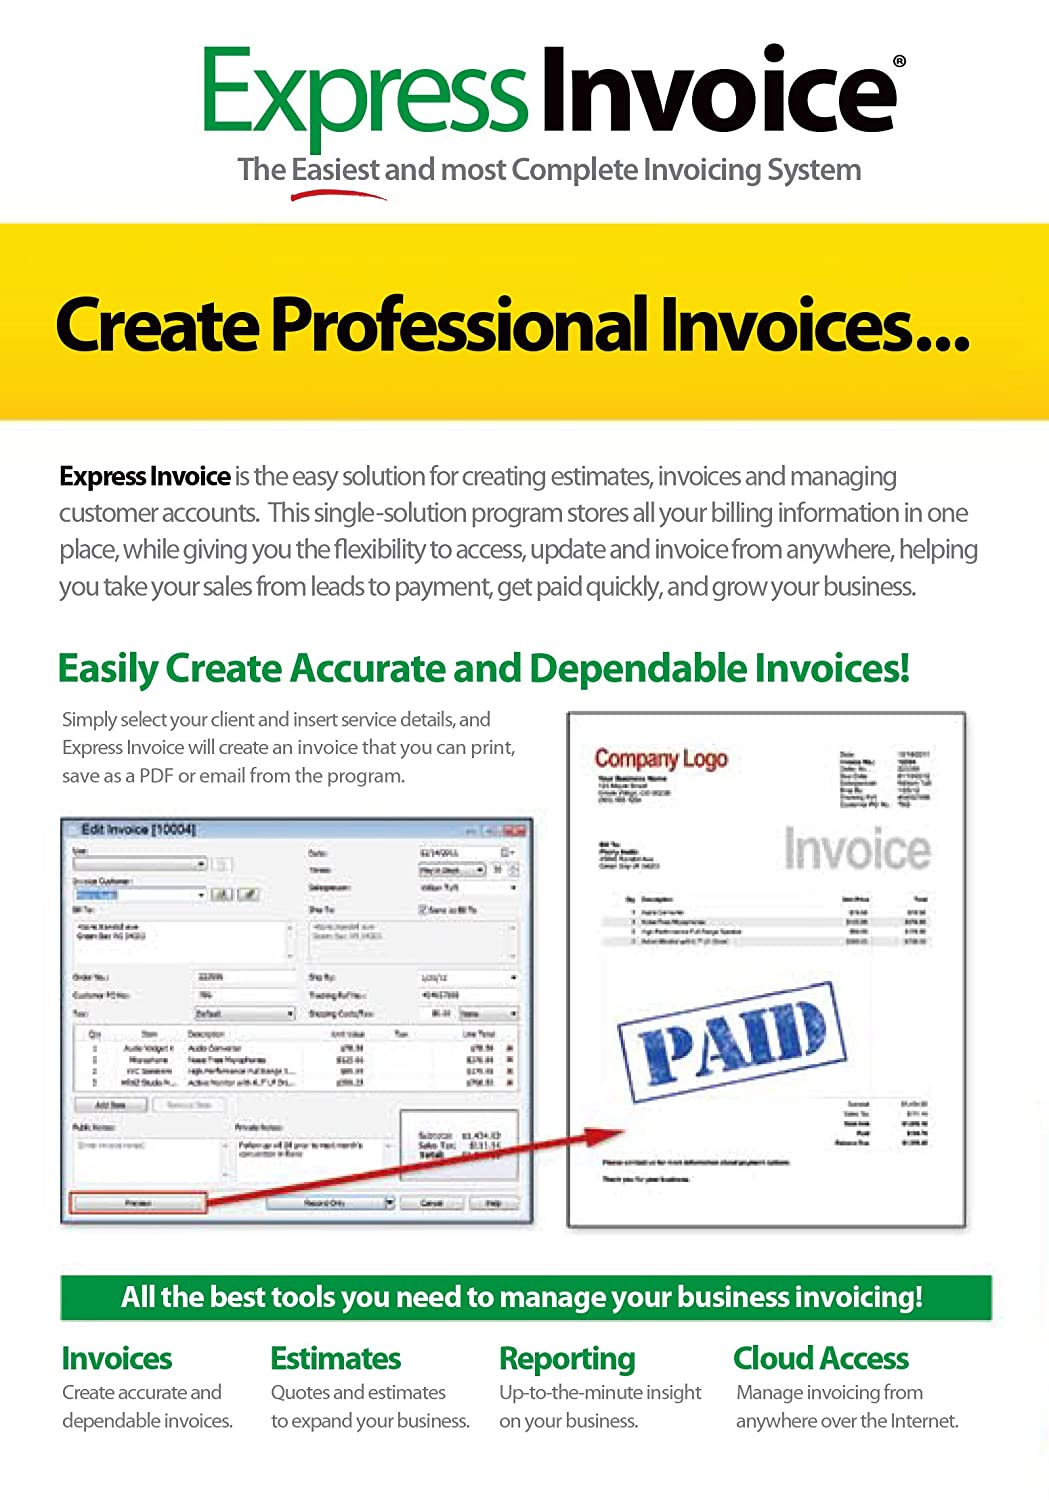 Amazoncom Express Invoice Professional Invoicing Software PCMac - Invoice making software free online fabric store coupon